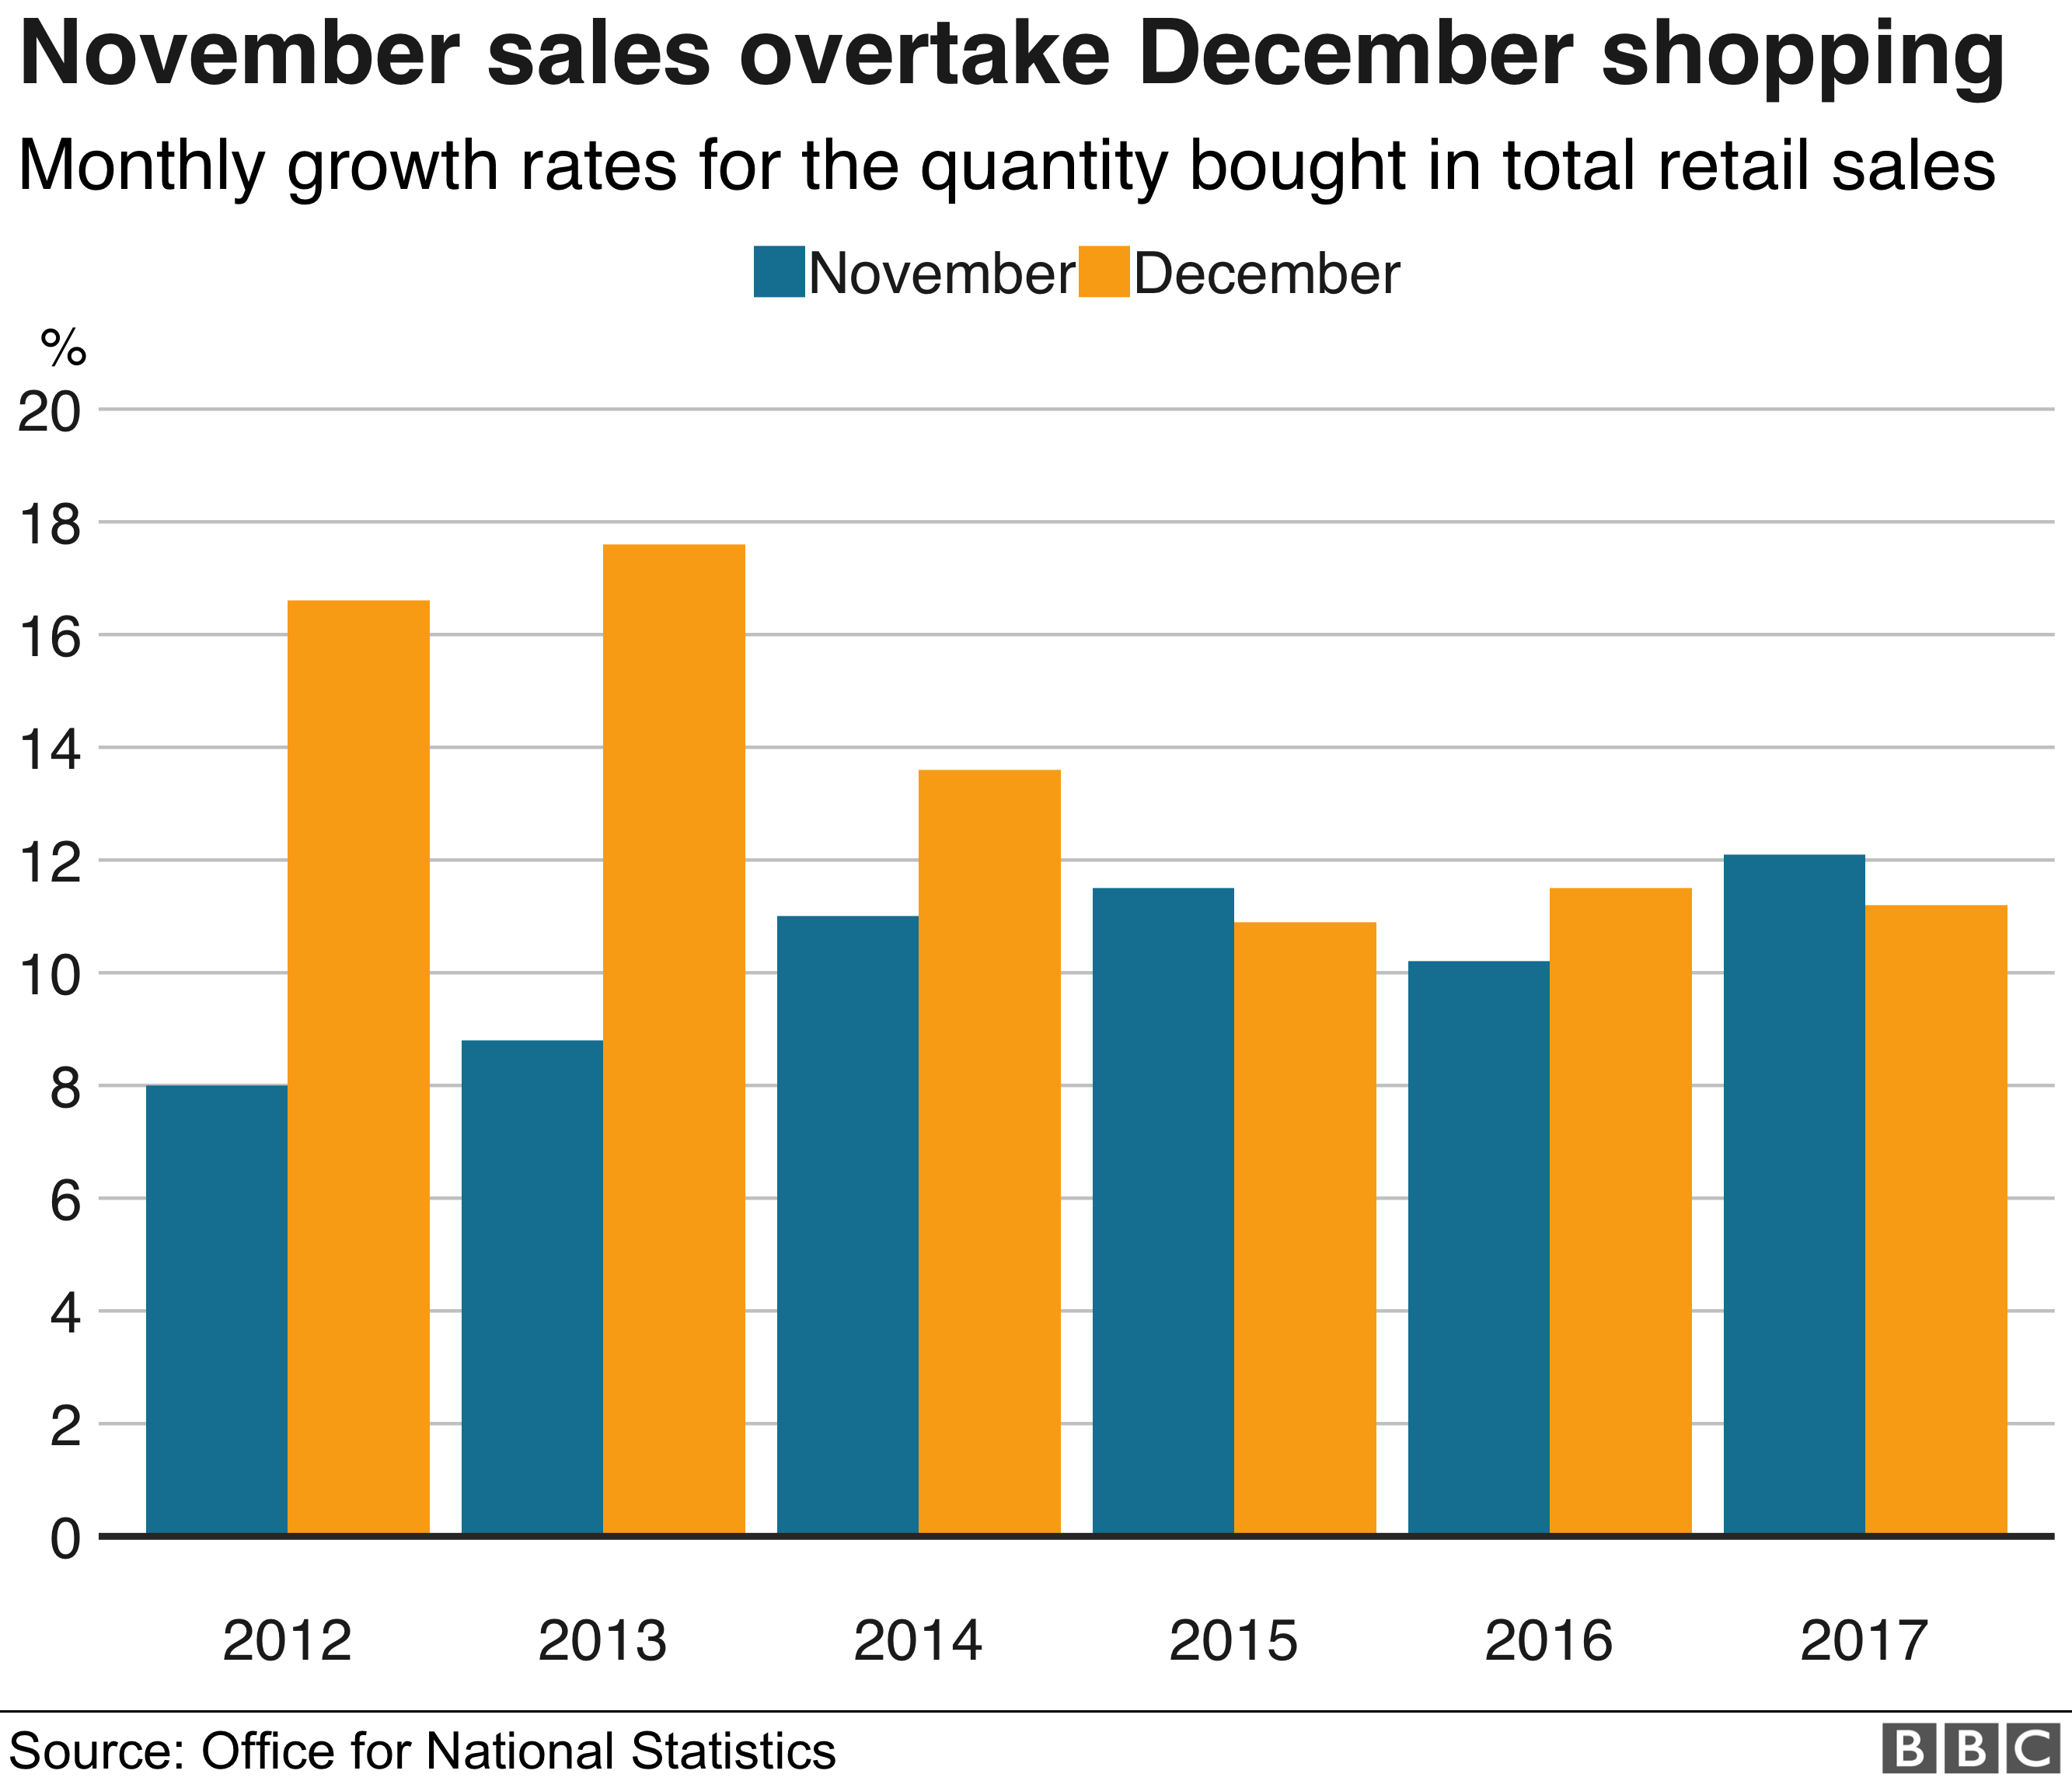 Chart showing the monthly growth rate for quantity bought in total retail spending in November and December from 2010 to 2017.